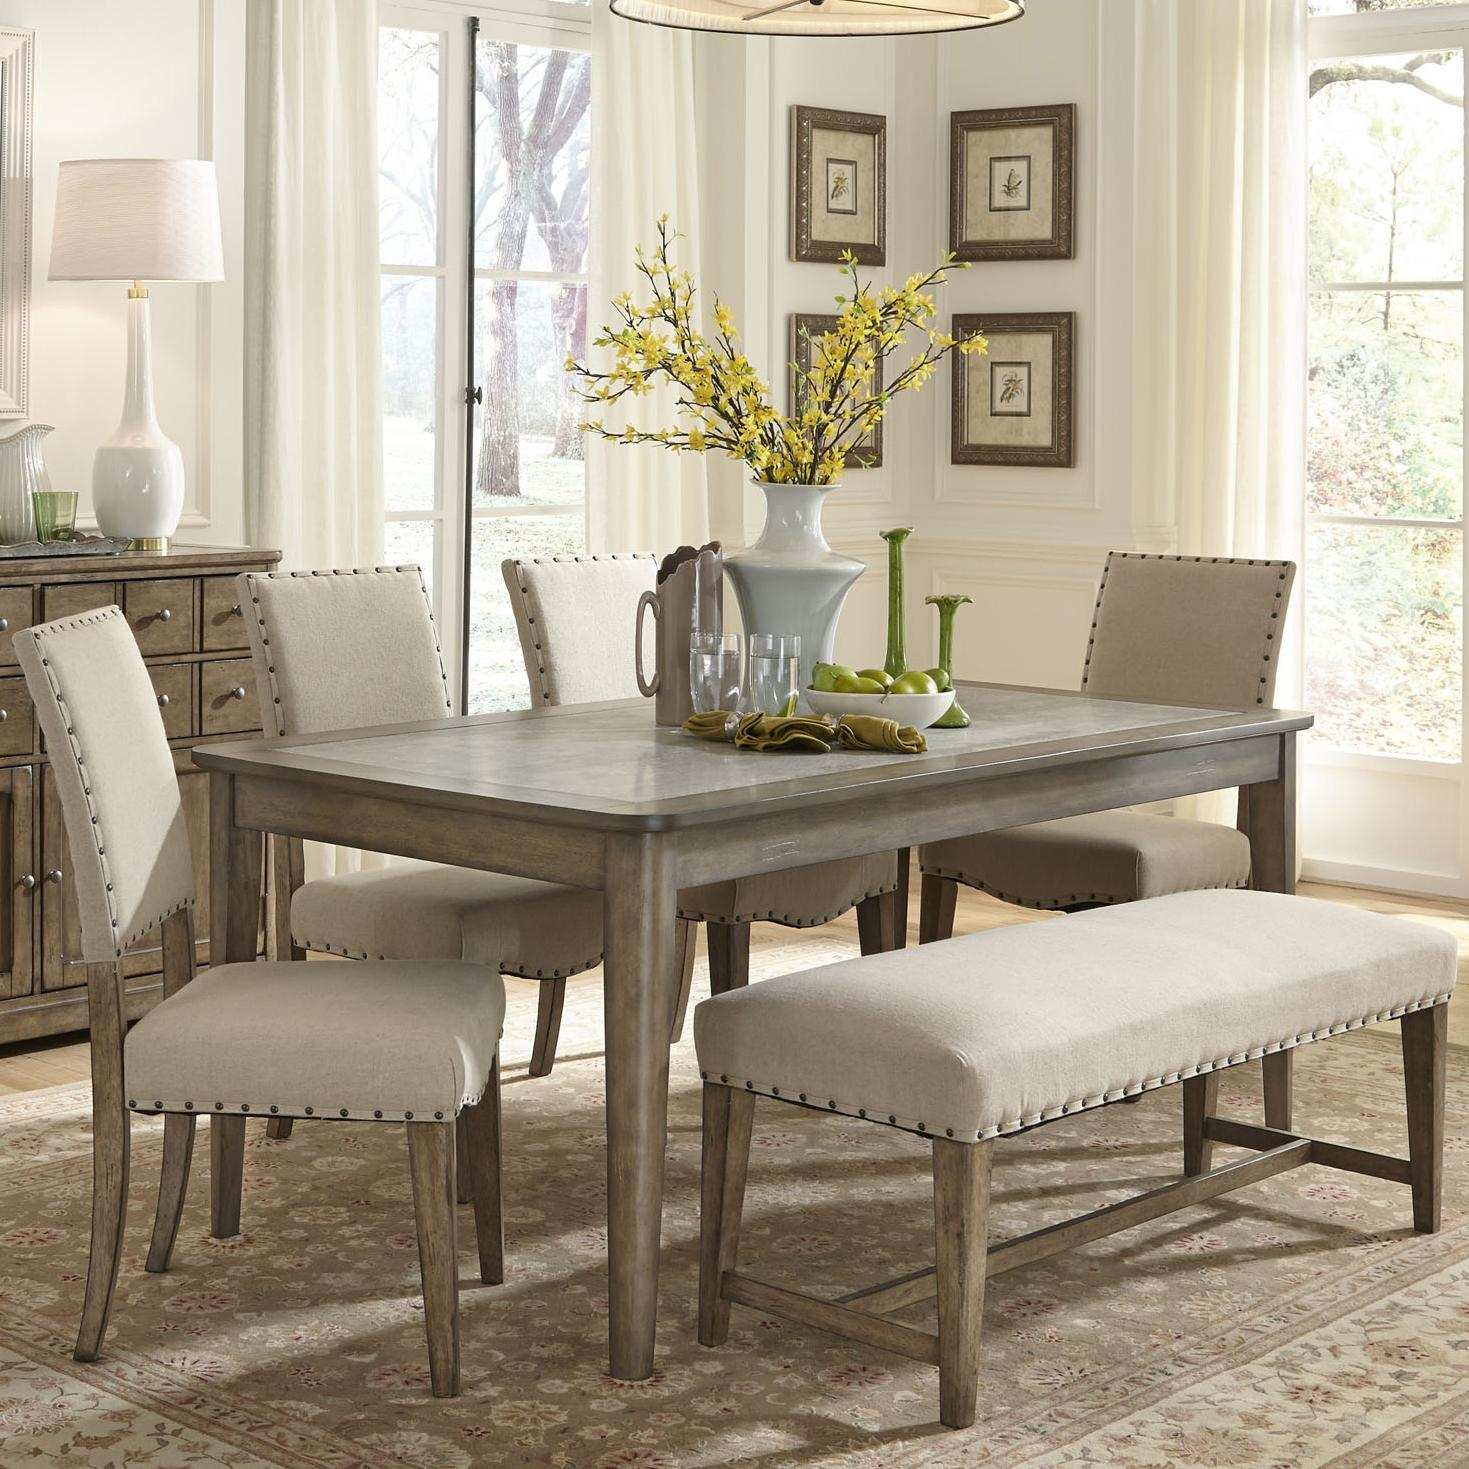 Captivating Rustic Casual 6 Piece Dining Table And Chairs Set With Bench